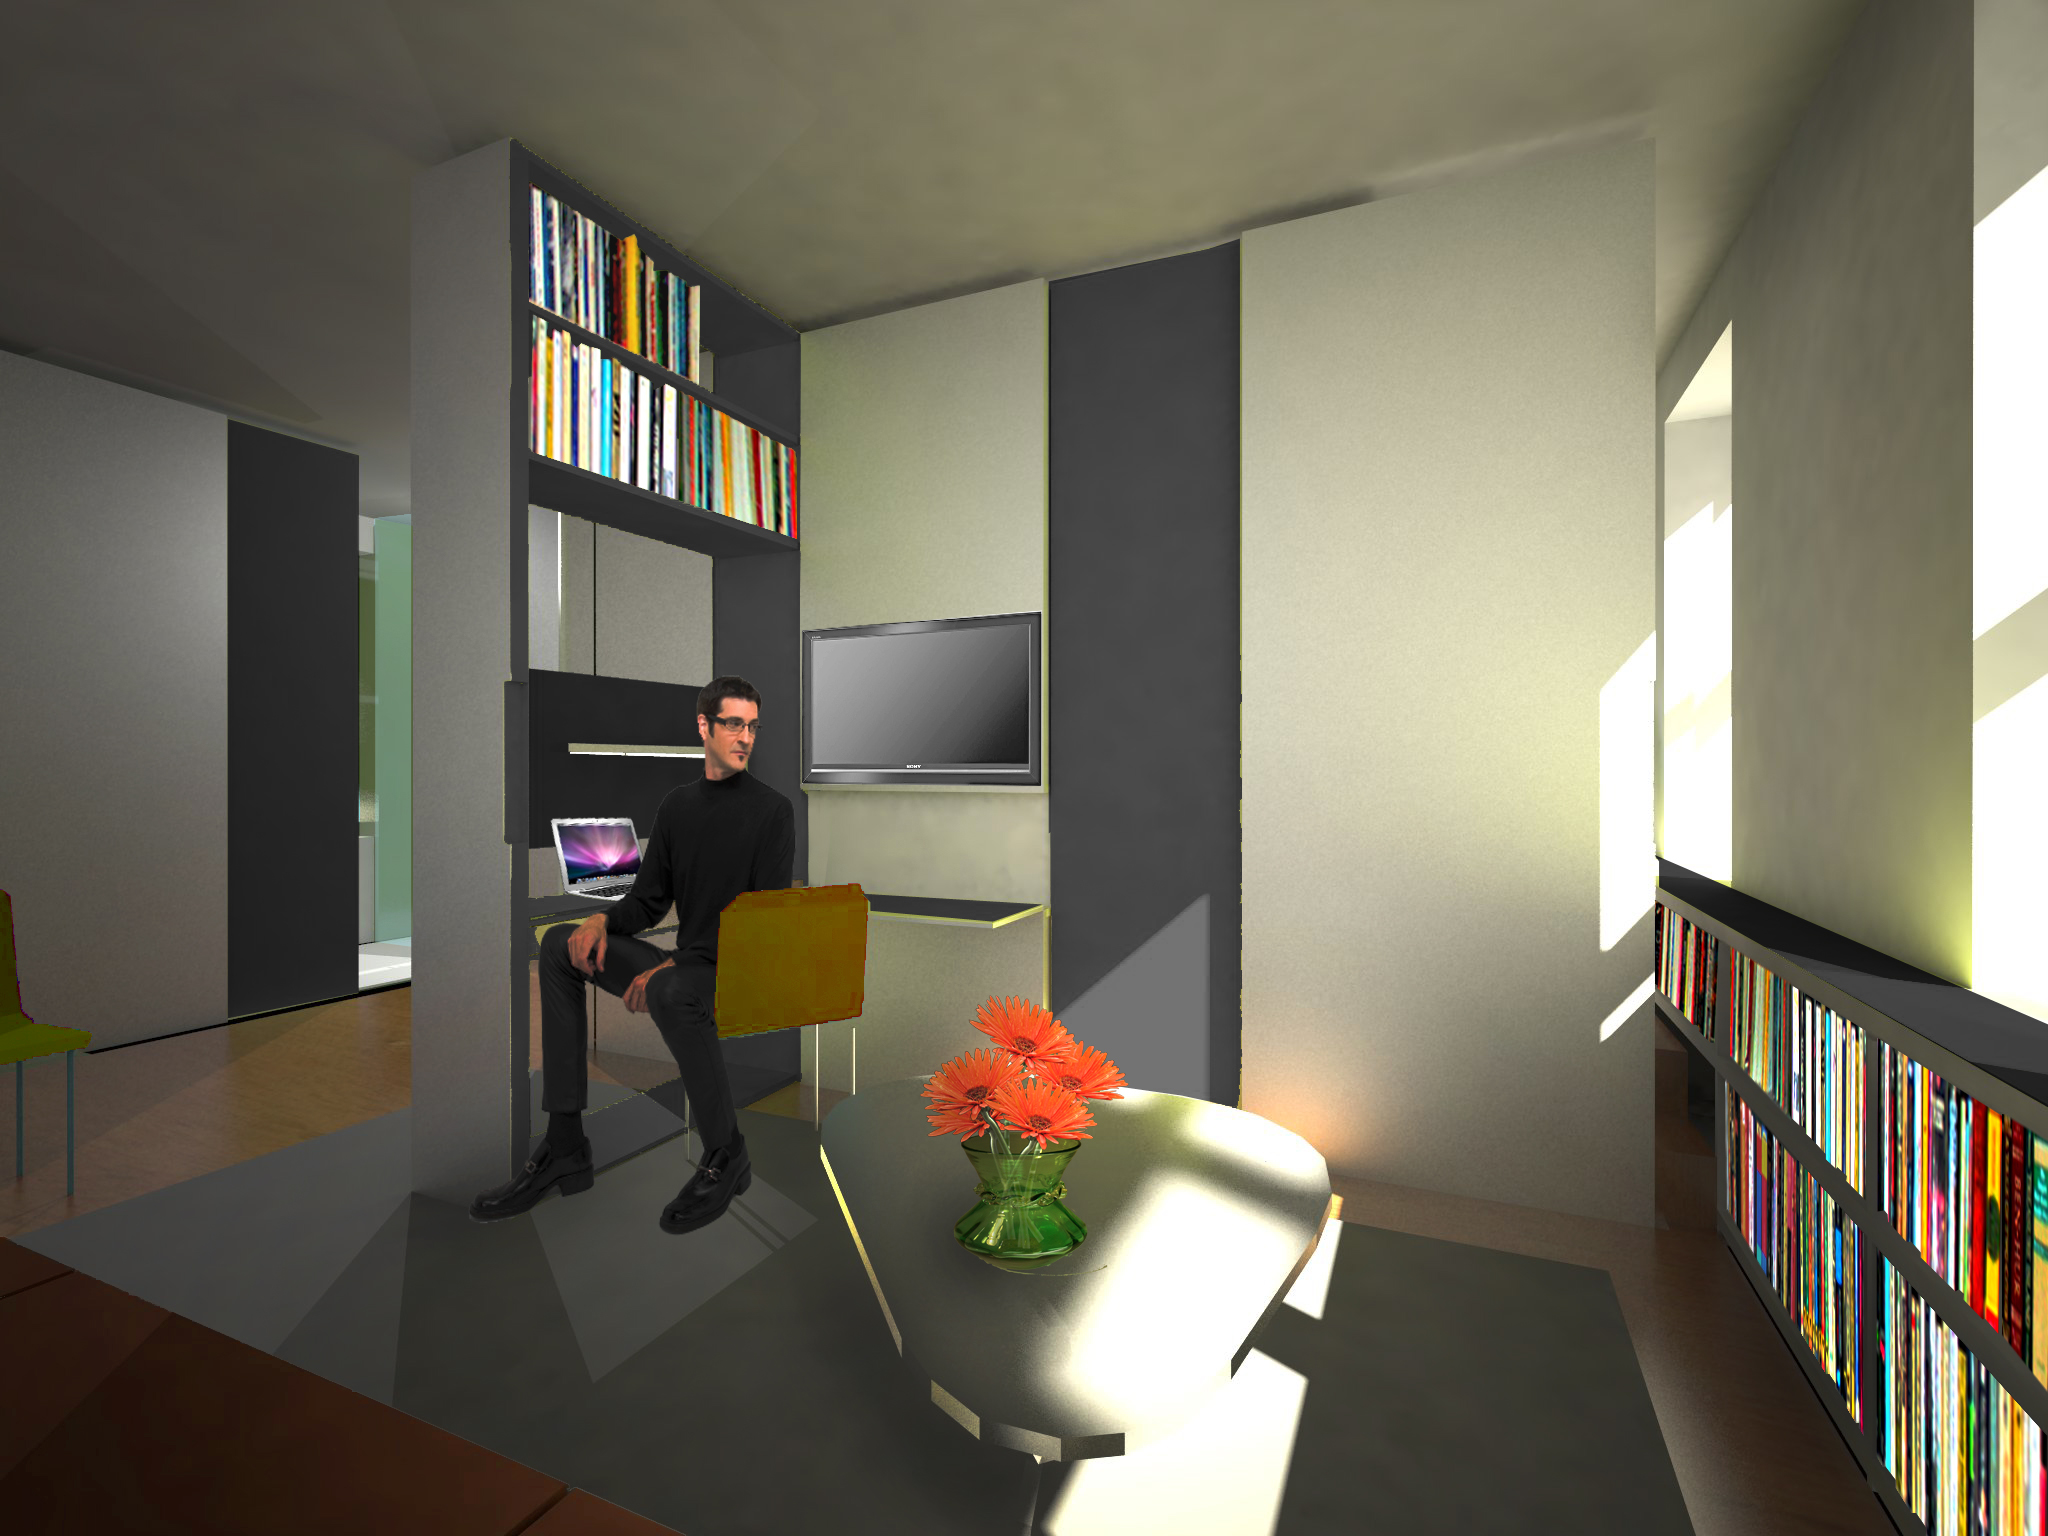 Apartment Rendering 7F OpenFINAL.jpg